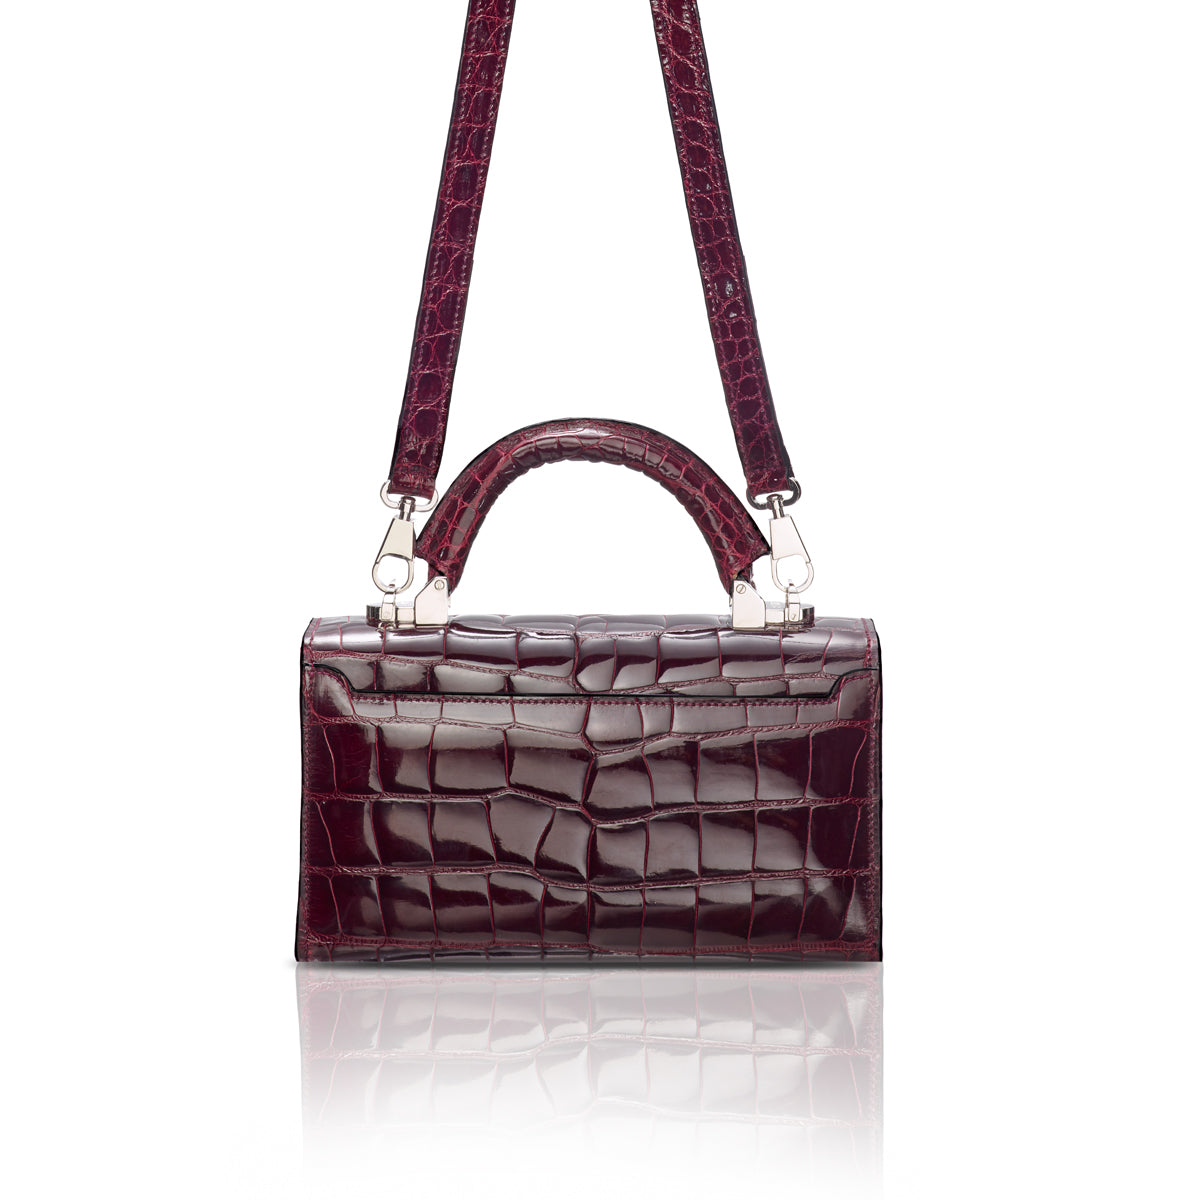 Top Handle 2.0 Mini - Burgundy Alligator